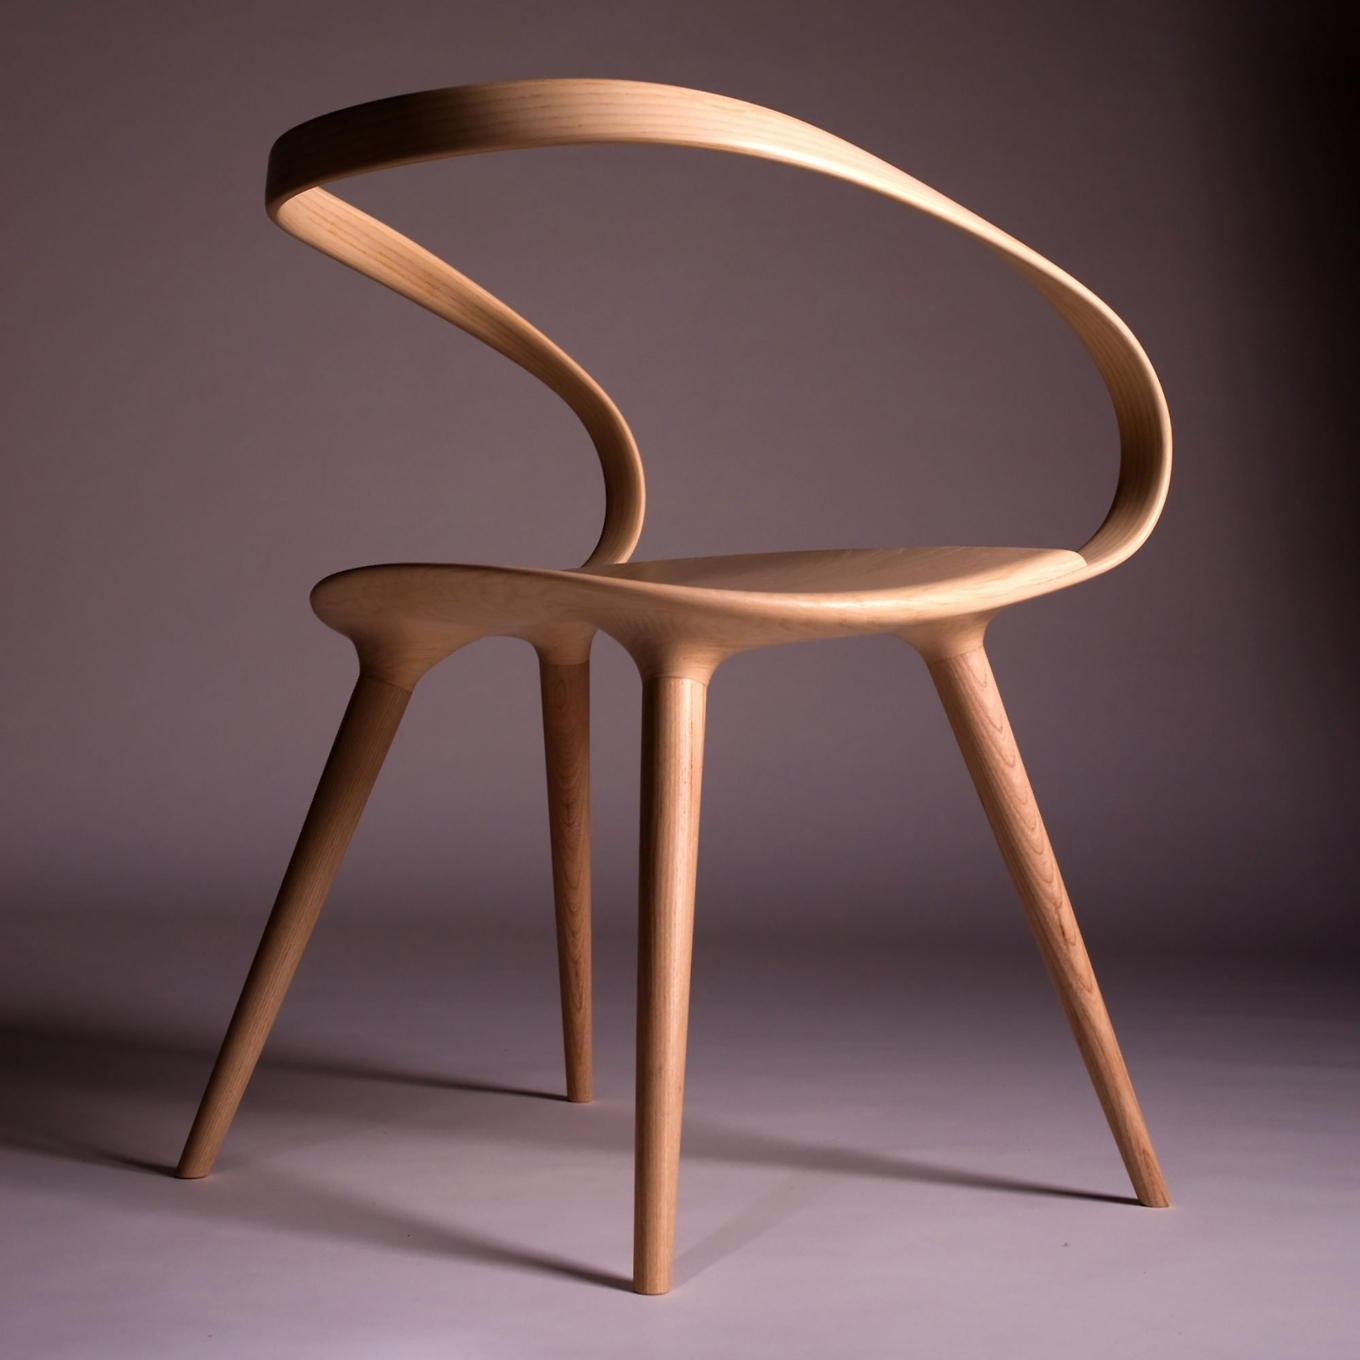 velo-chair-by-jan-waterston-gessato-4